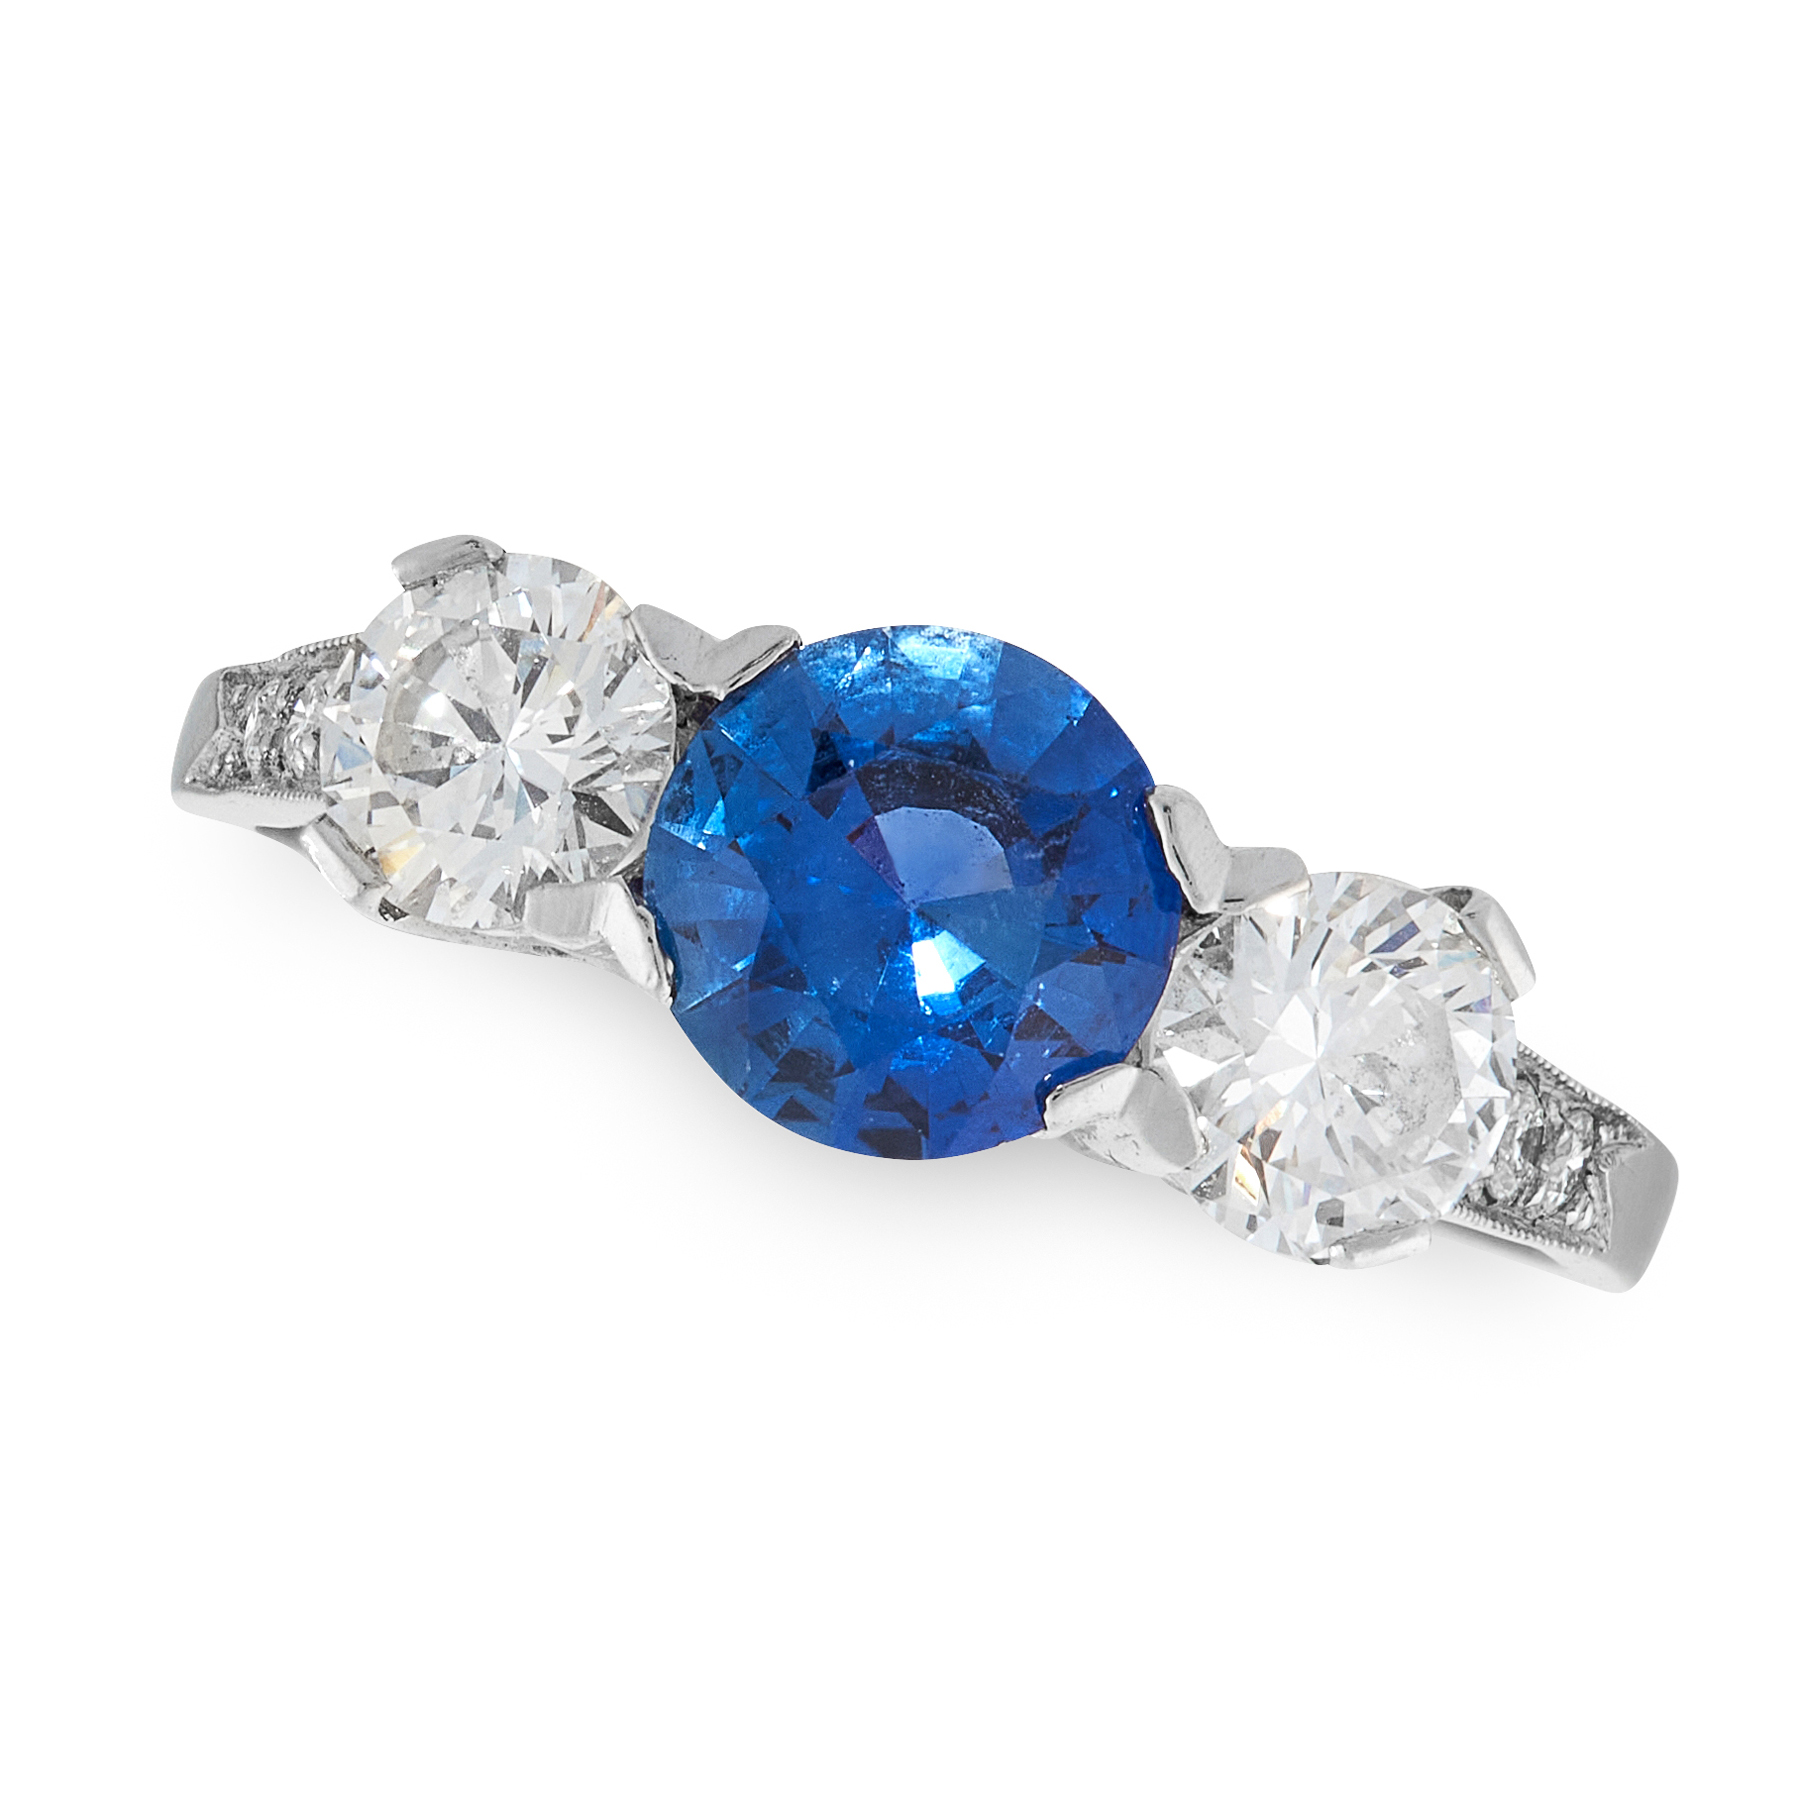 A SAPPHIRE AND DIAMOND THREE STONE RING in platinum, set with a round cut sapphire of 0.92 carats